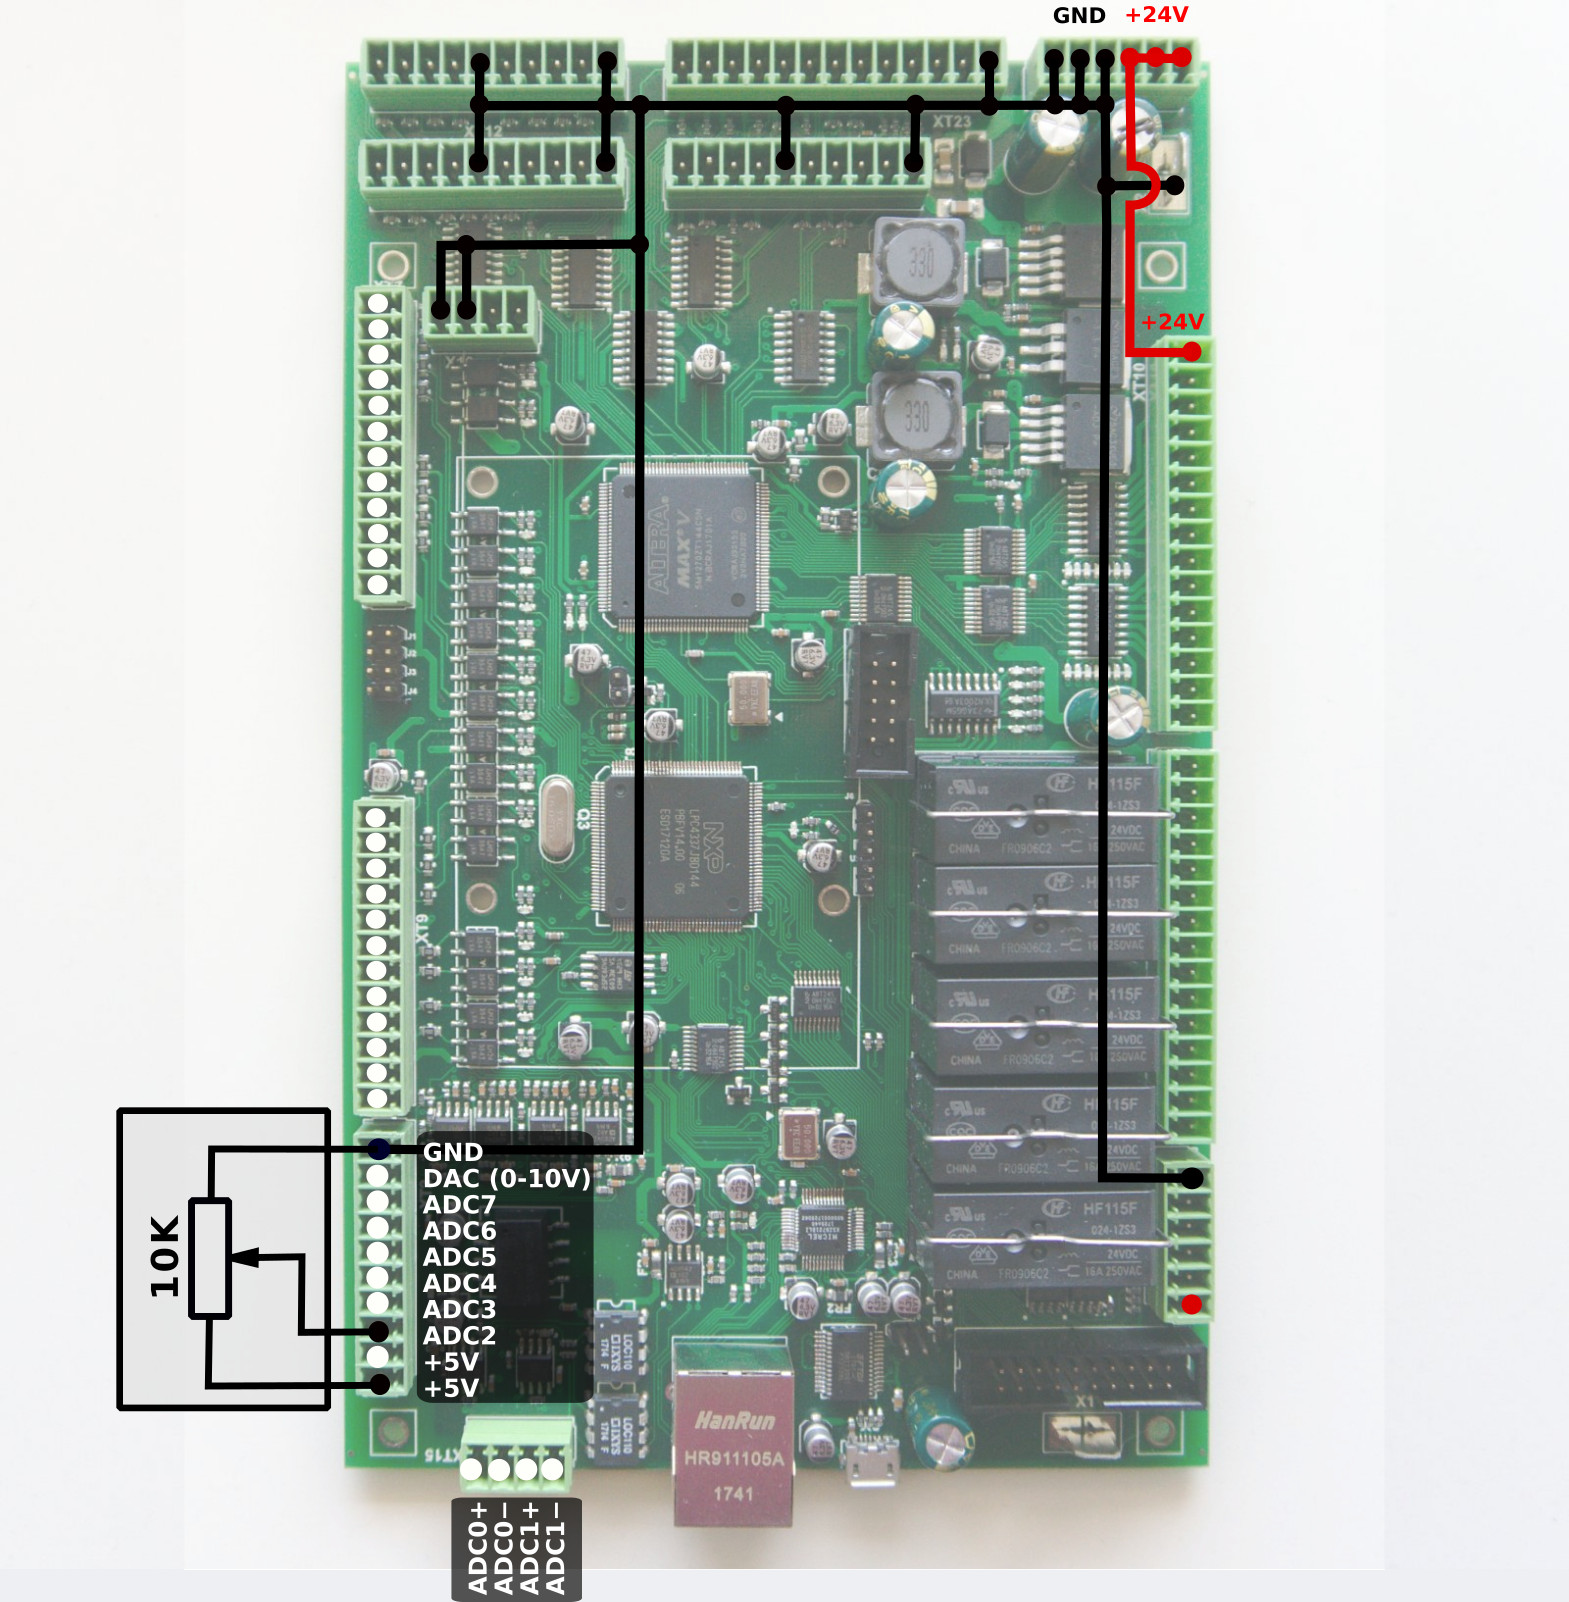 et7-b-adc-connection-002.jpg